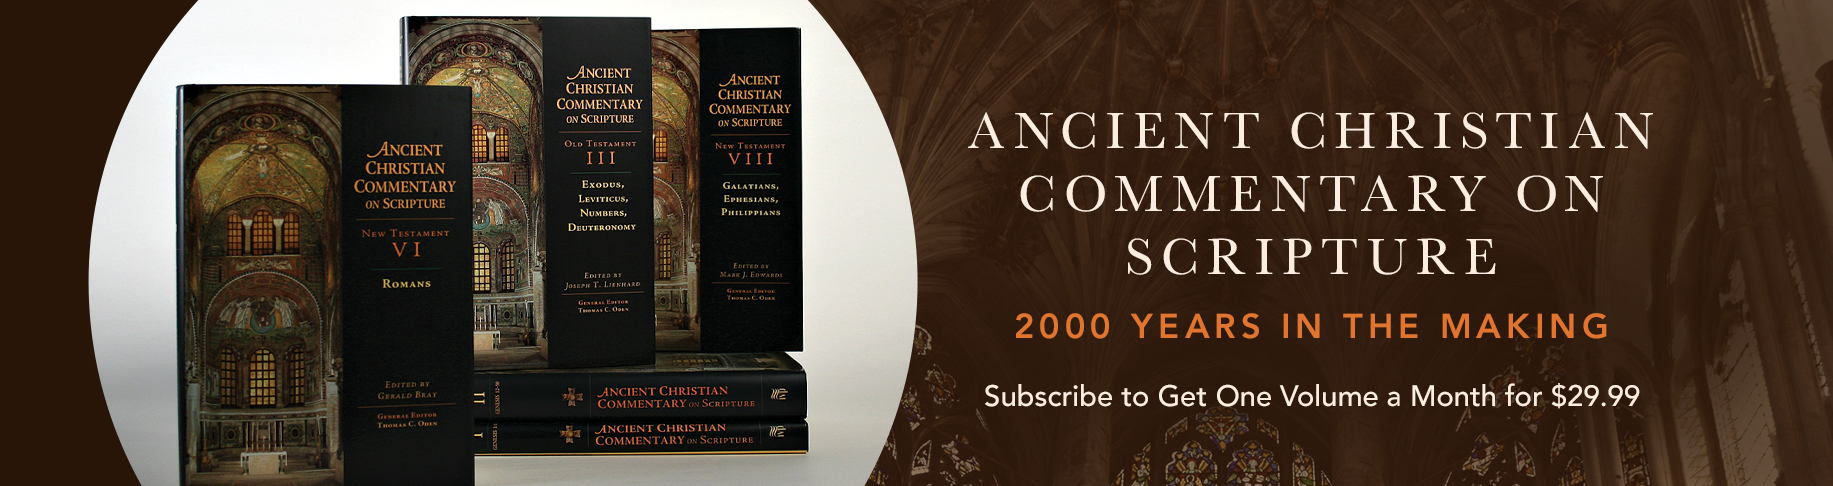 Ancient Christian Commentary on Scripture Membership Program - Get a New Volume Each Month Plus a Free Book with Sign Up